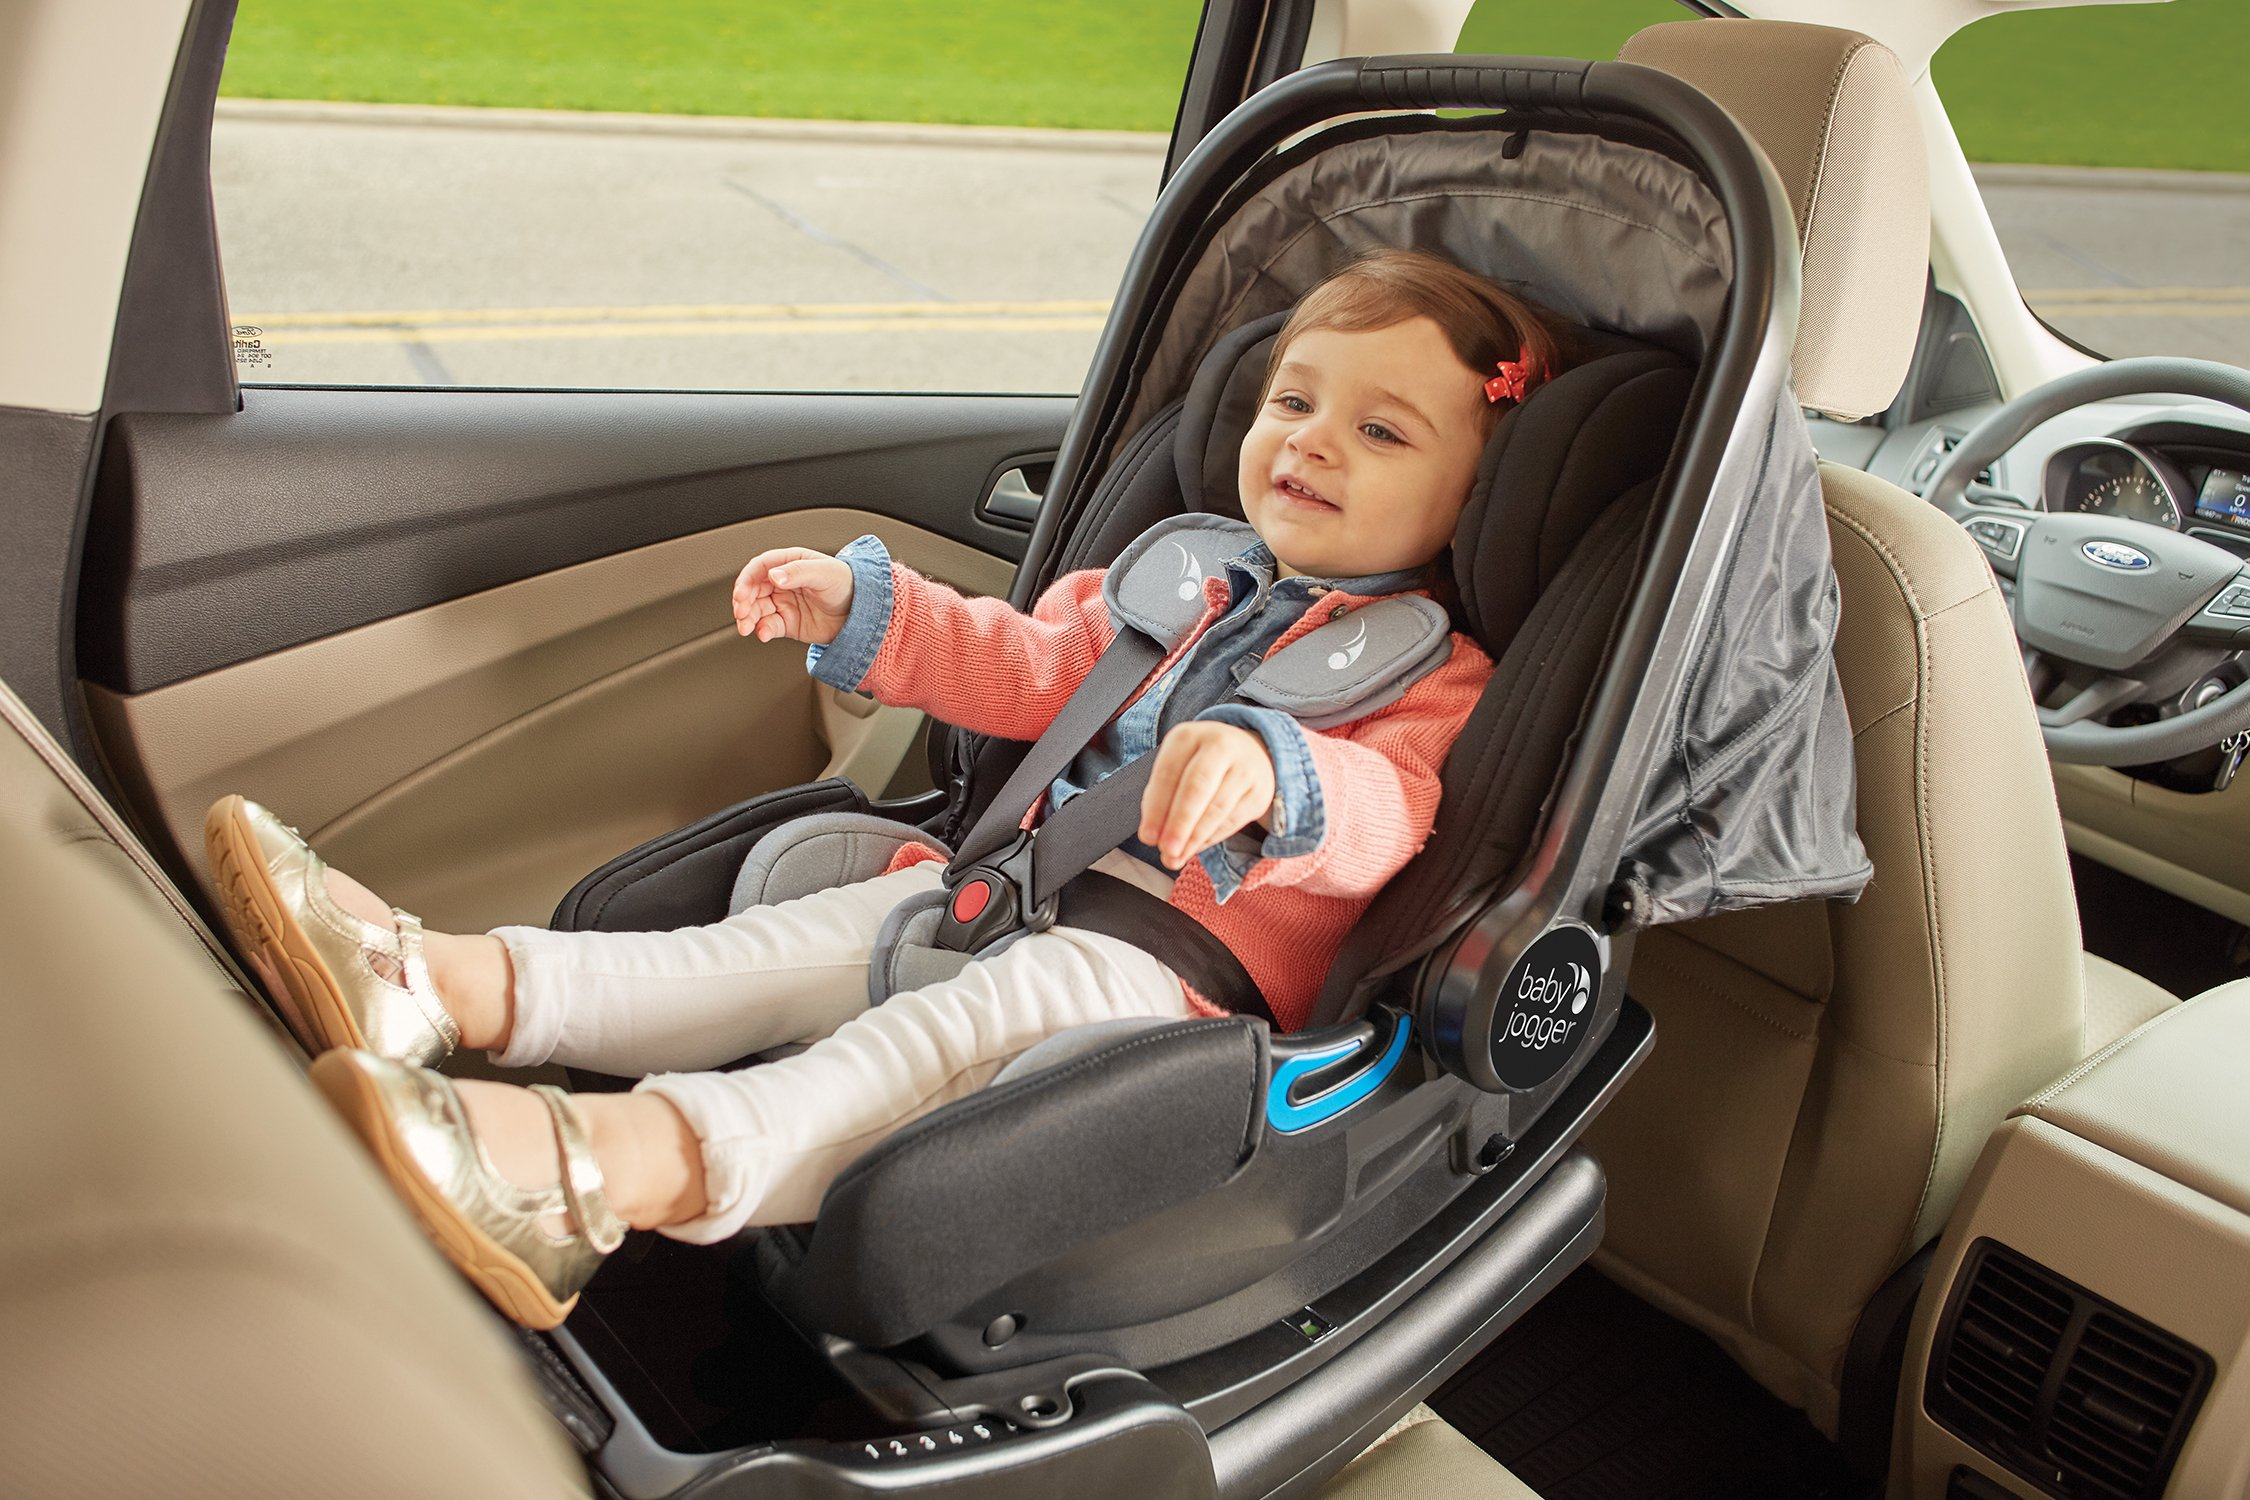 Baby Jogger City Go i-Size Iso-fix Car Seat Base,  Black Baby Jogger Compatible with baby jogger city go i-size infant car seat. Secure isofix connectors plus colour-coded red/green indicators ensure both the base and seat are properly installed, minimising the risk of incorrect installation. Load leg prevents the seat from shifting when rear facing. 11